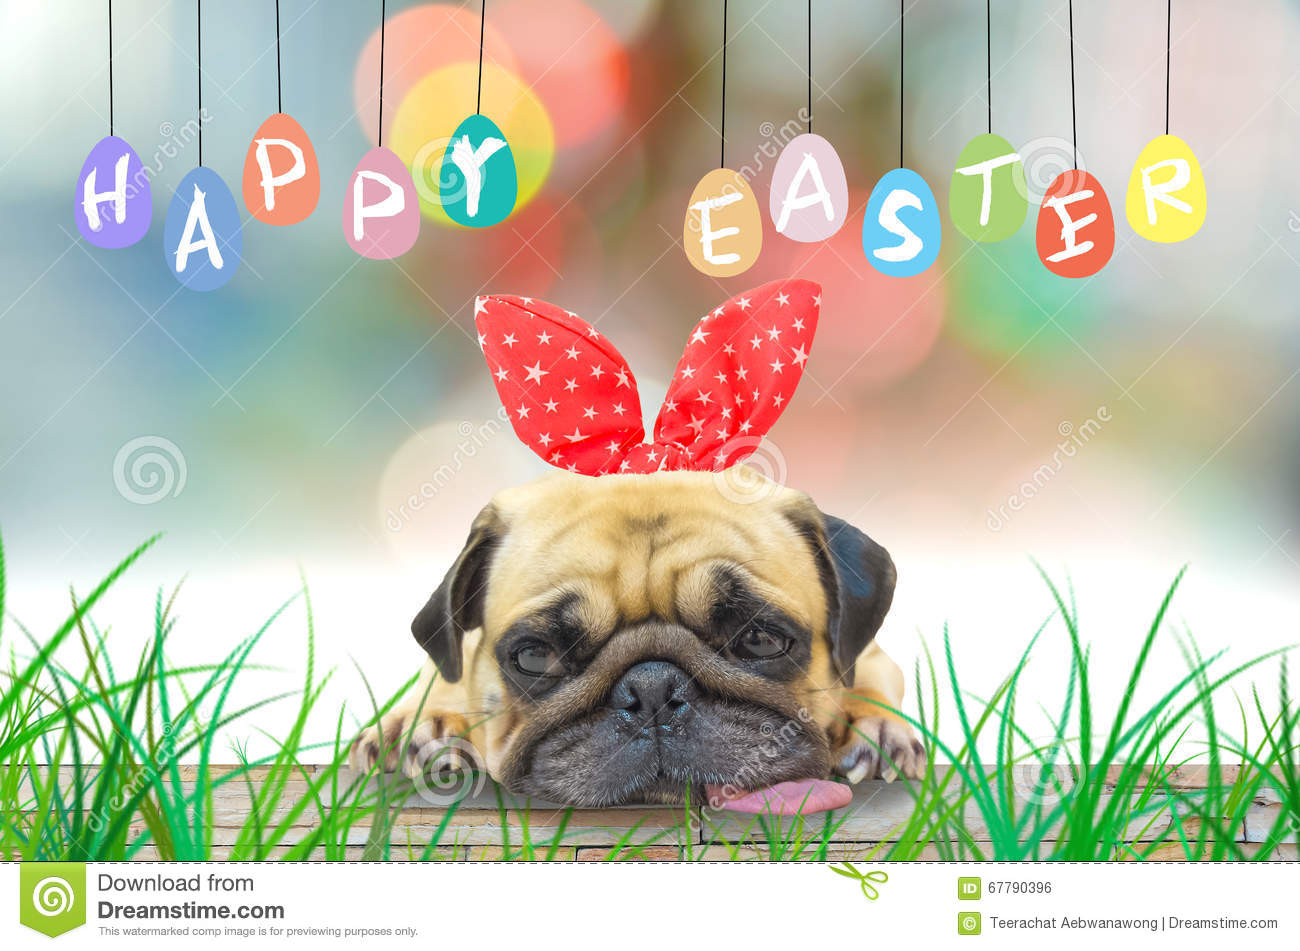 Happy Easter. Pug wearing Easter rabbit Bunny ears sitting with pastel colorful of eggs.